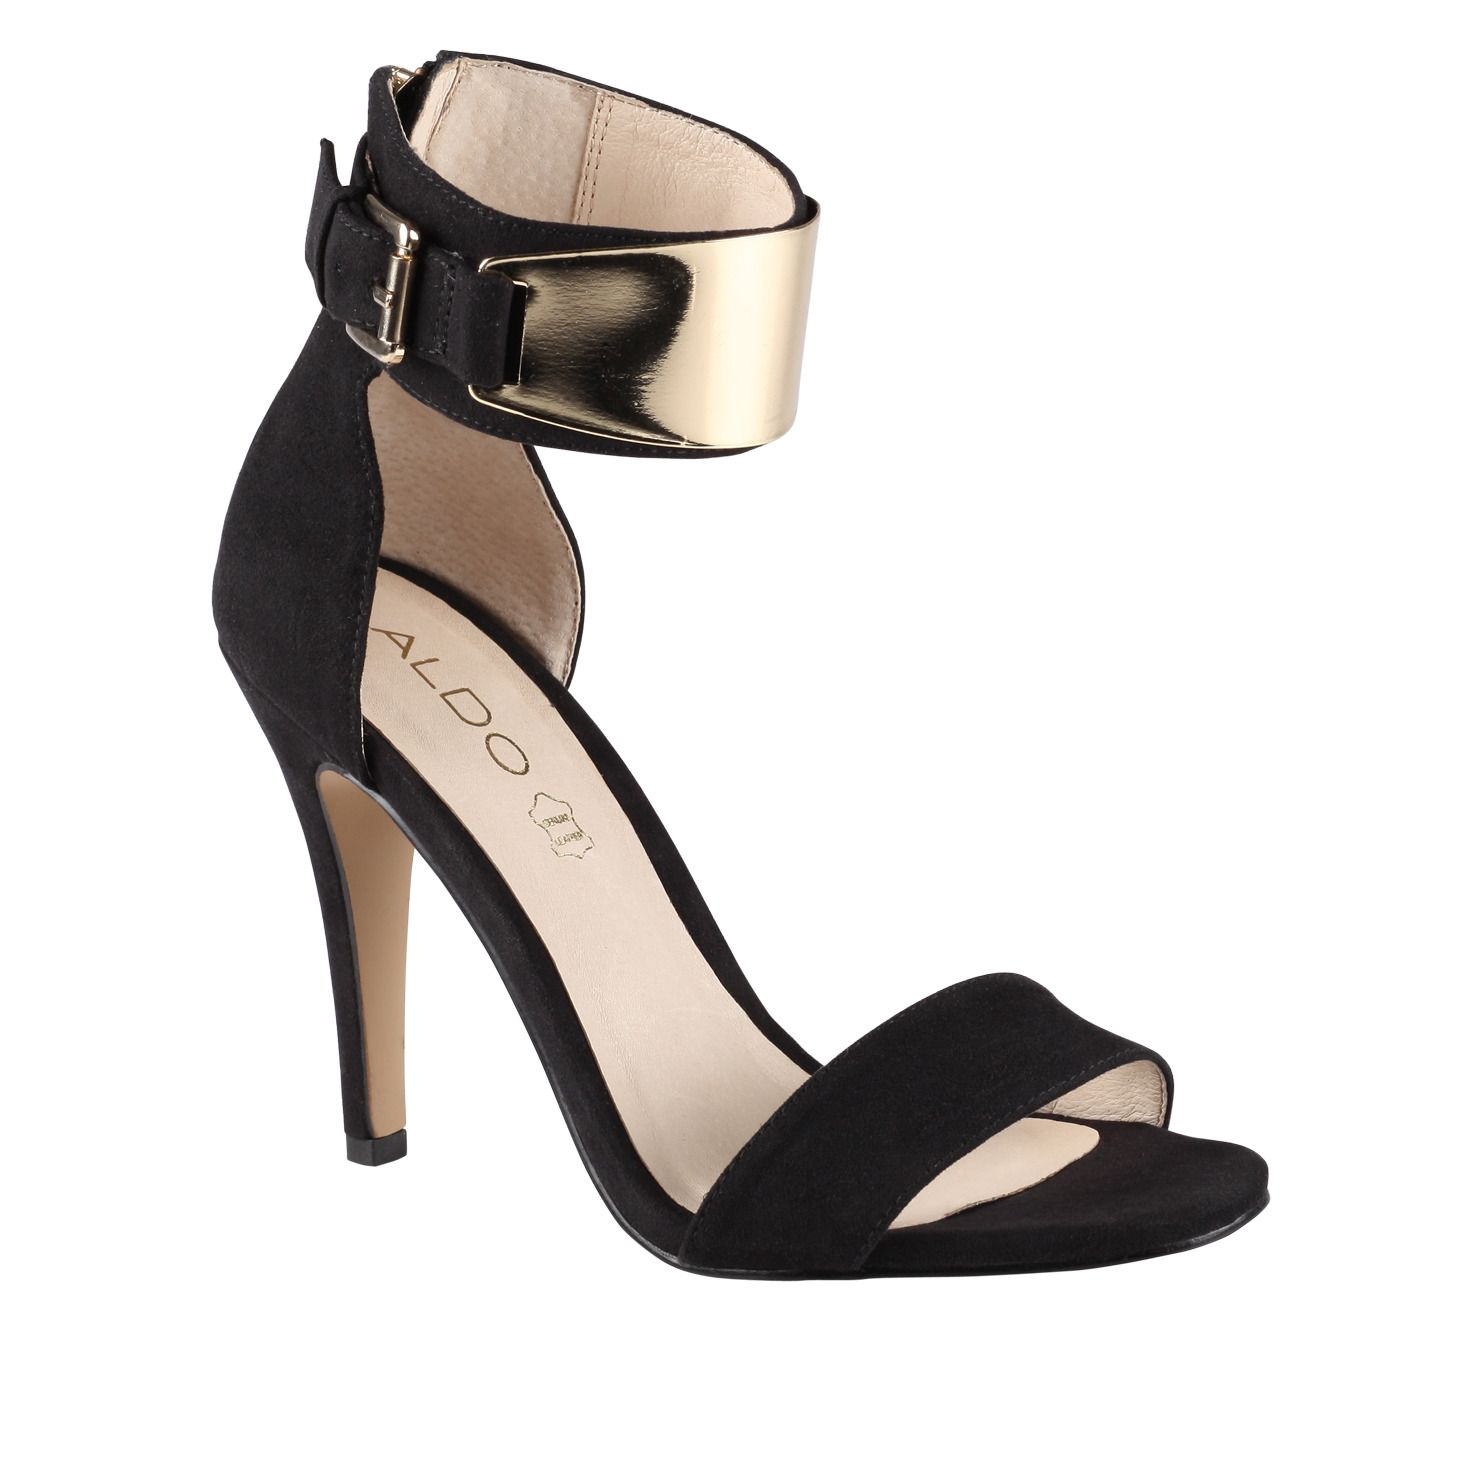 Black sandals for sale - Very Beautiful Bujumbura Women S Special Occasion Sandals For Sale At Aldo